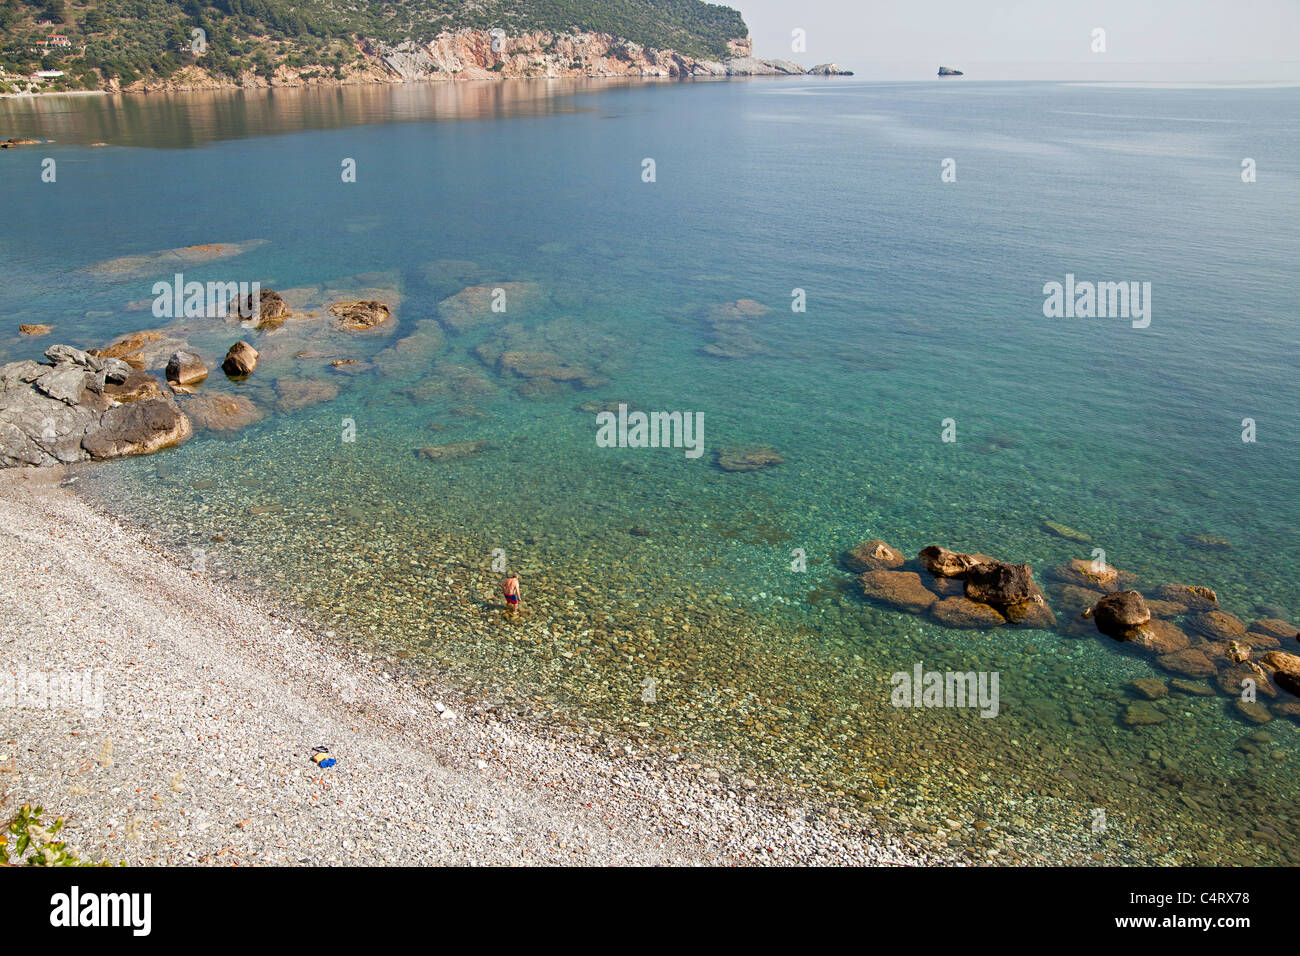 man going swimming at the town beach in Skopelos Town, Skopelos Island, Northern Sporades, Greece - Stock Image